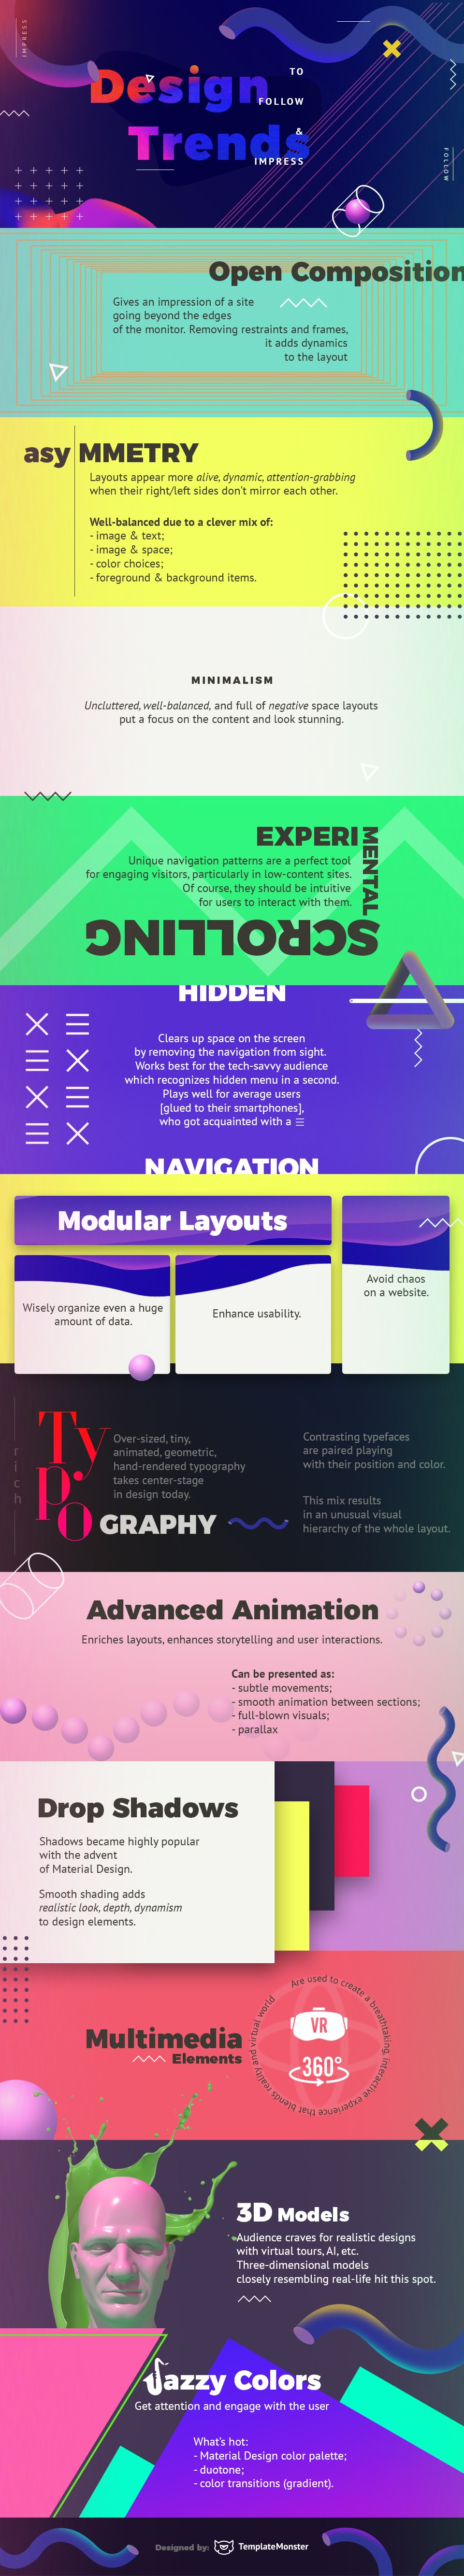 Design Trends to Follow and Impress #infographic